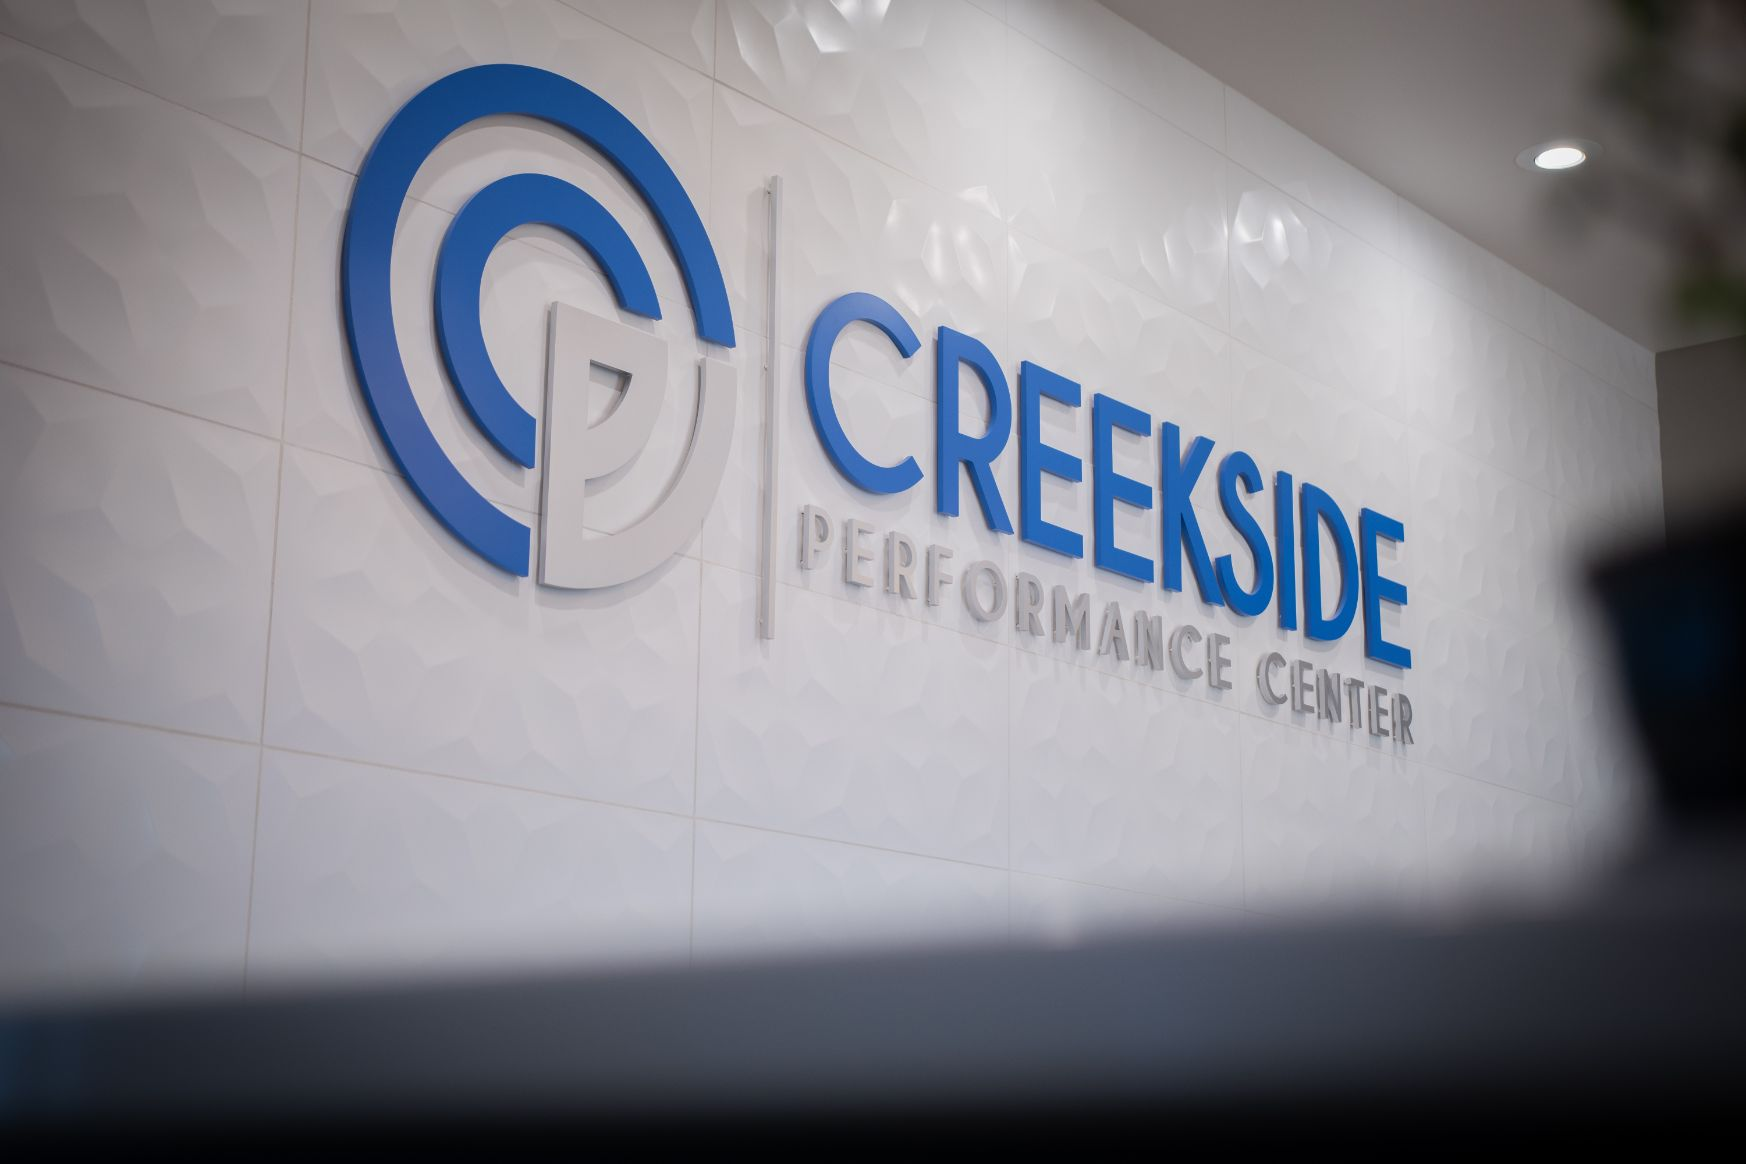 Creekside Performance Center